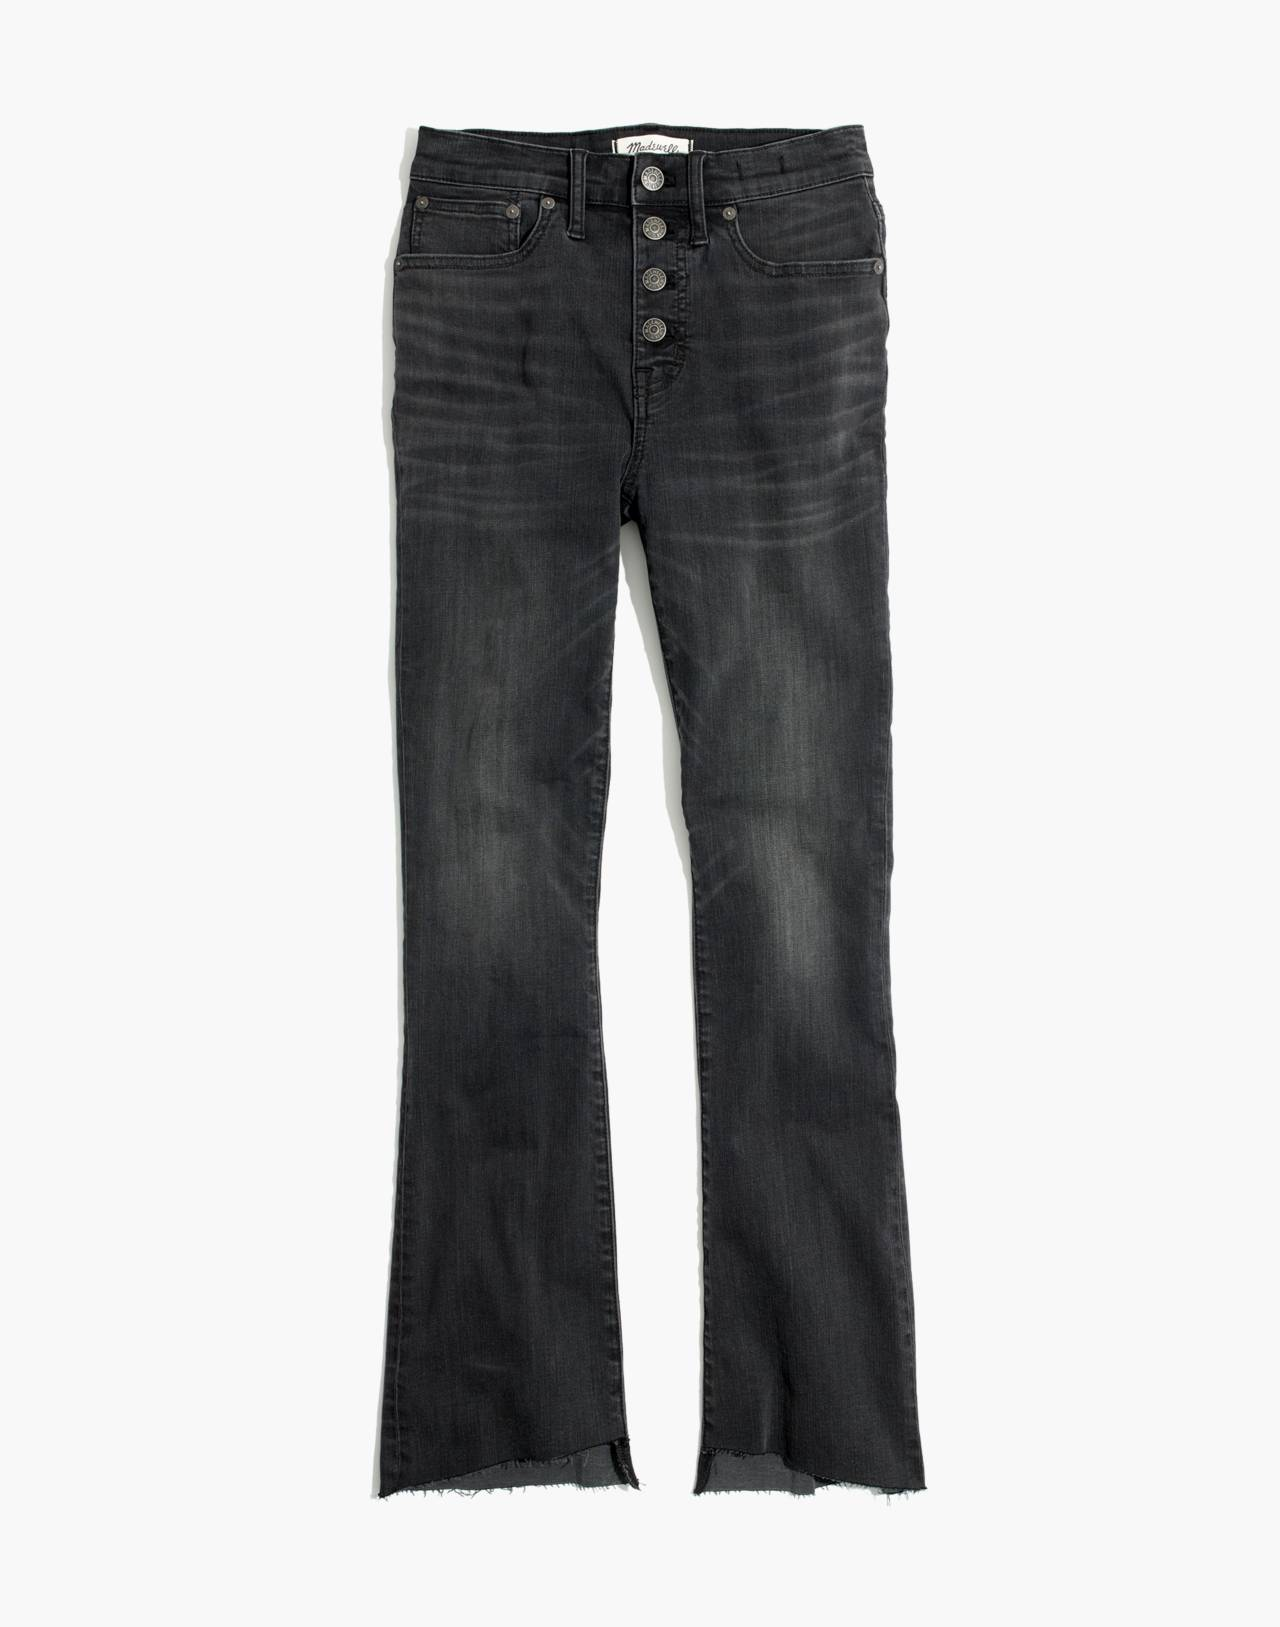 Cali Demi-Boot Jeans: Asymmetrical Hem Edition in woodston wash image 4